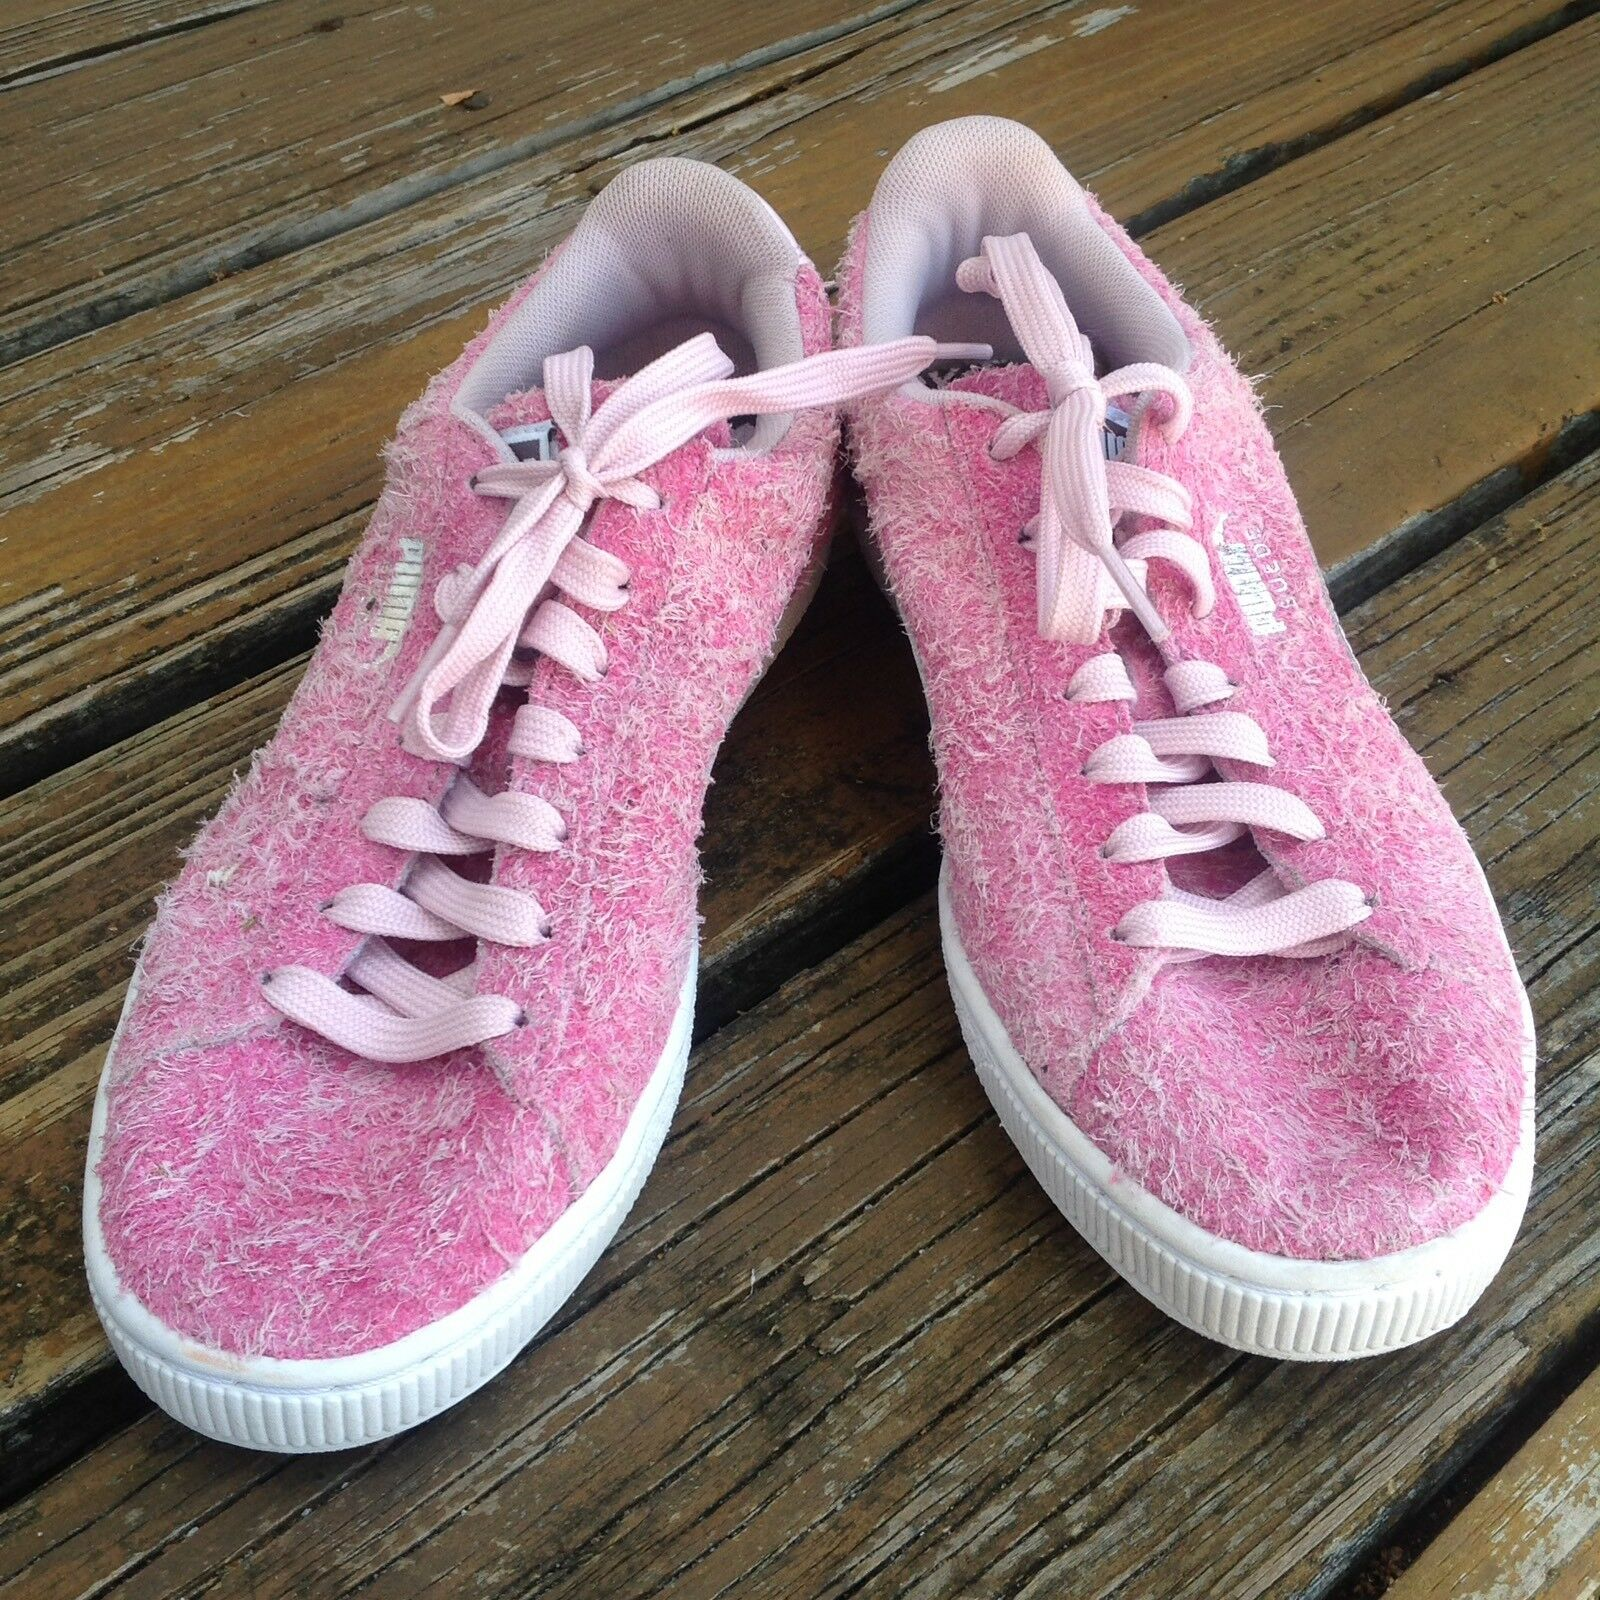 Puma Suede Elemental Casual Women's Pink Sneakers 6.5 Athletic Hairy Shag Shoes